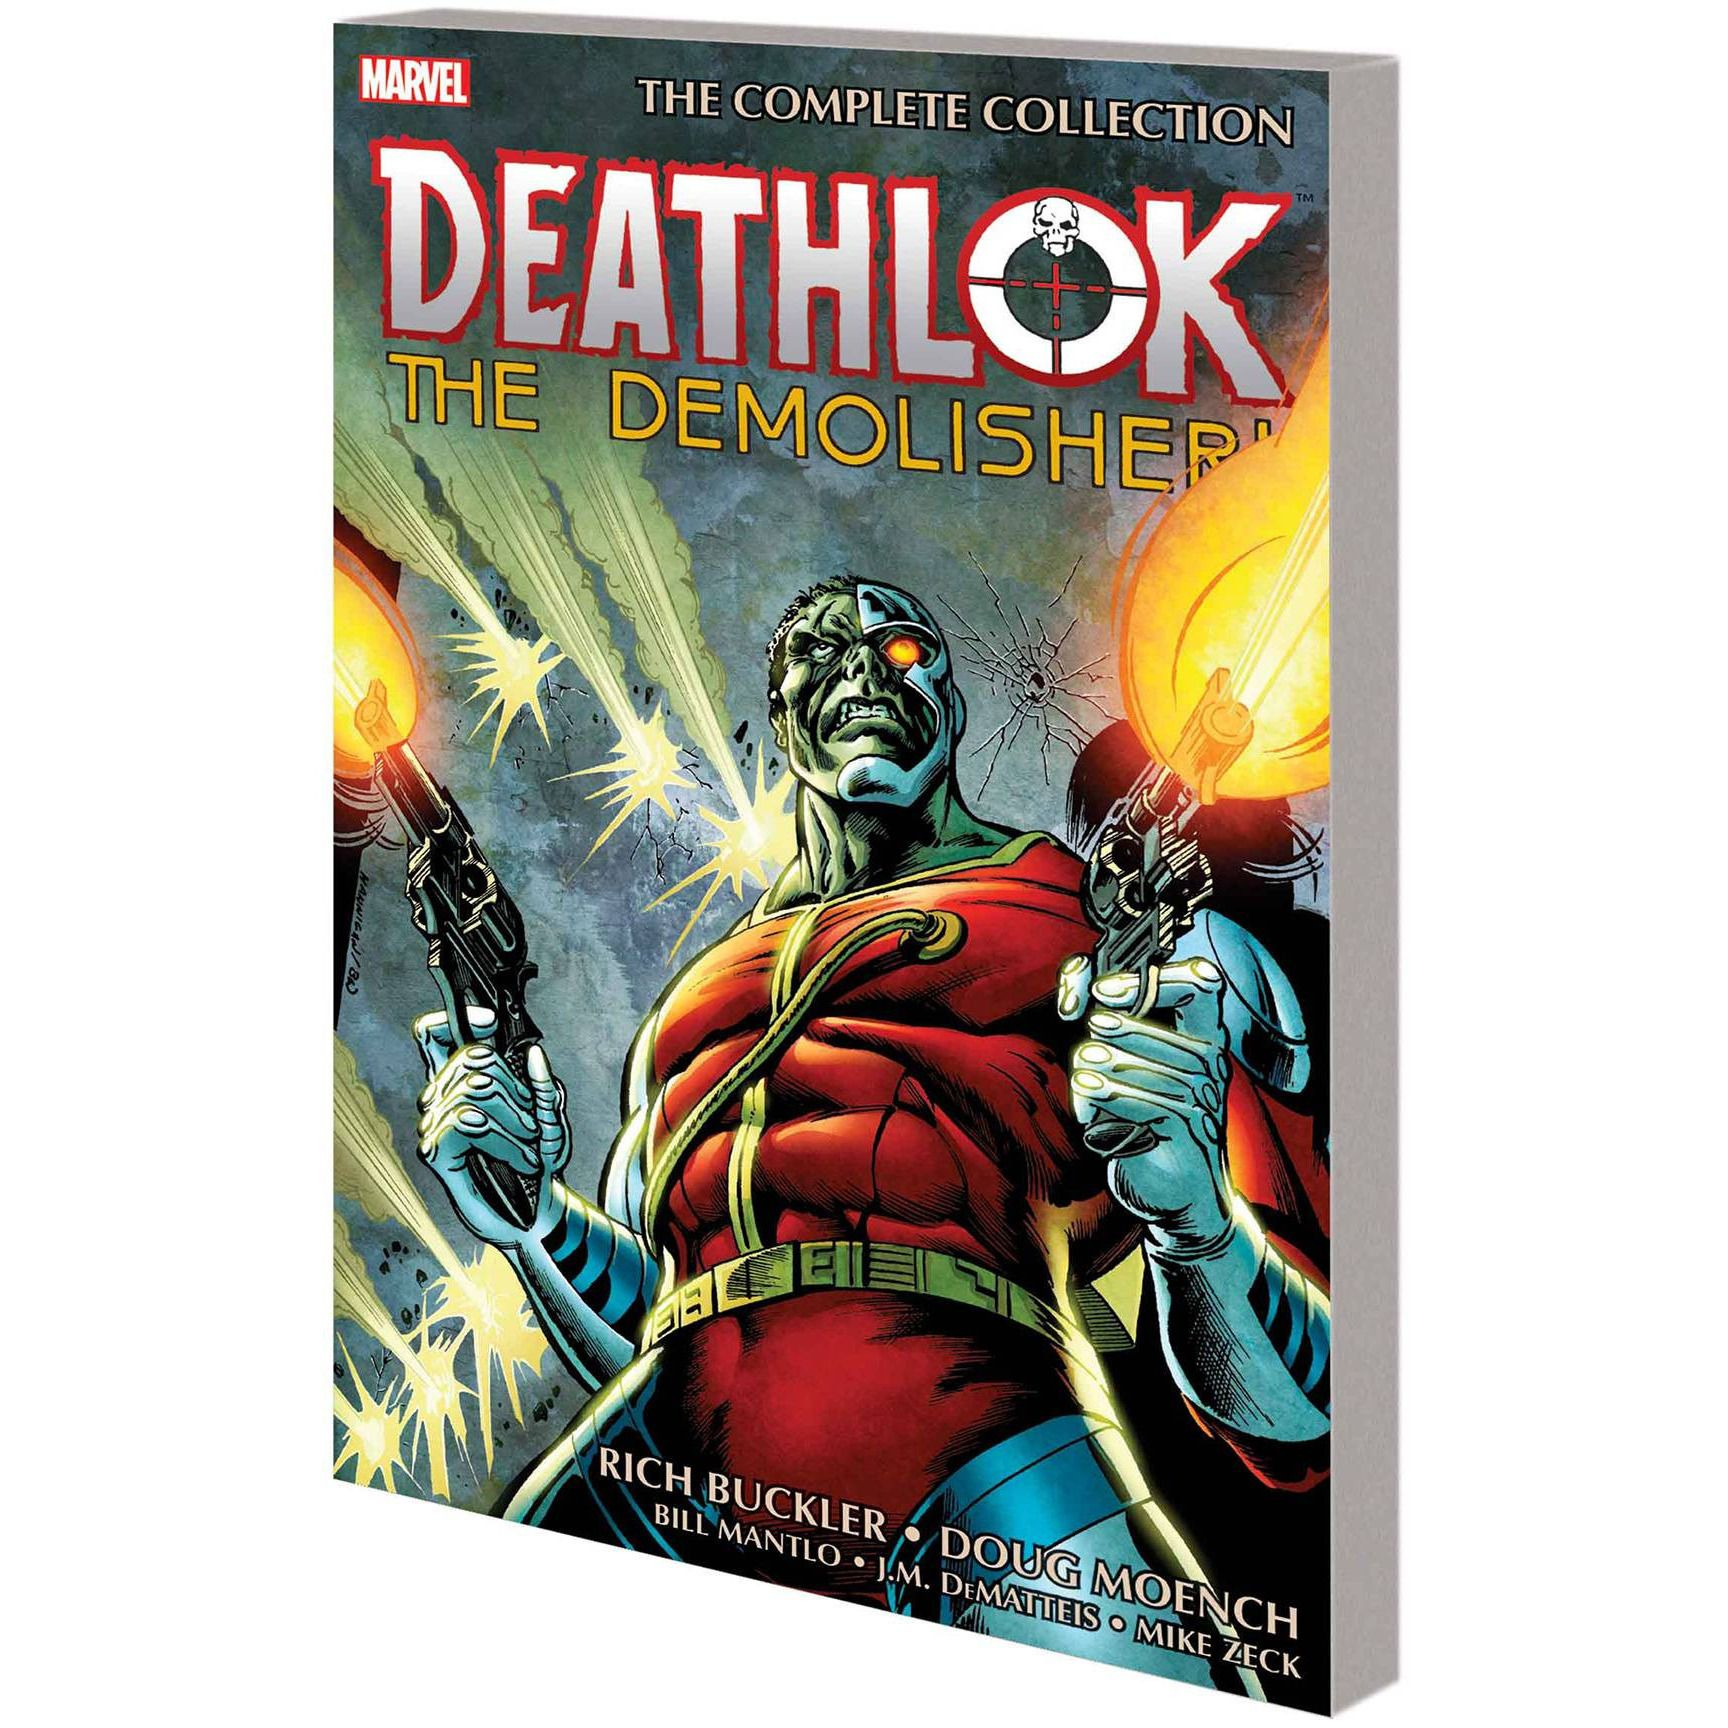 Deathlock TP The Demolisher Complete Collection Uncanny!